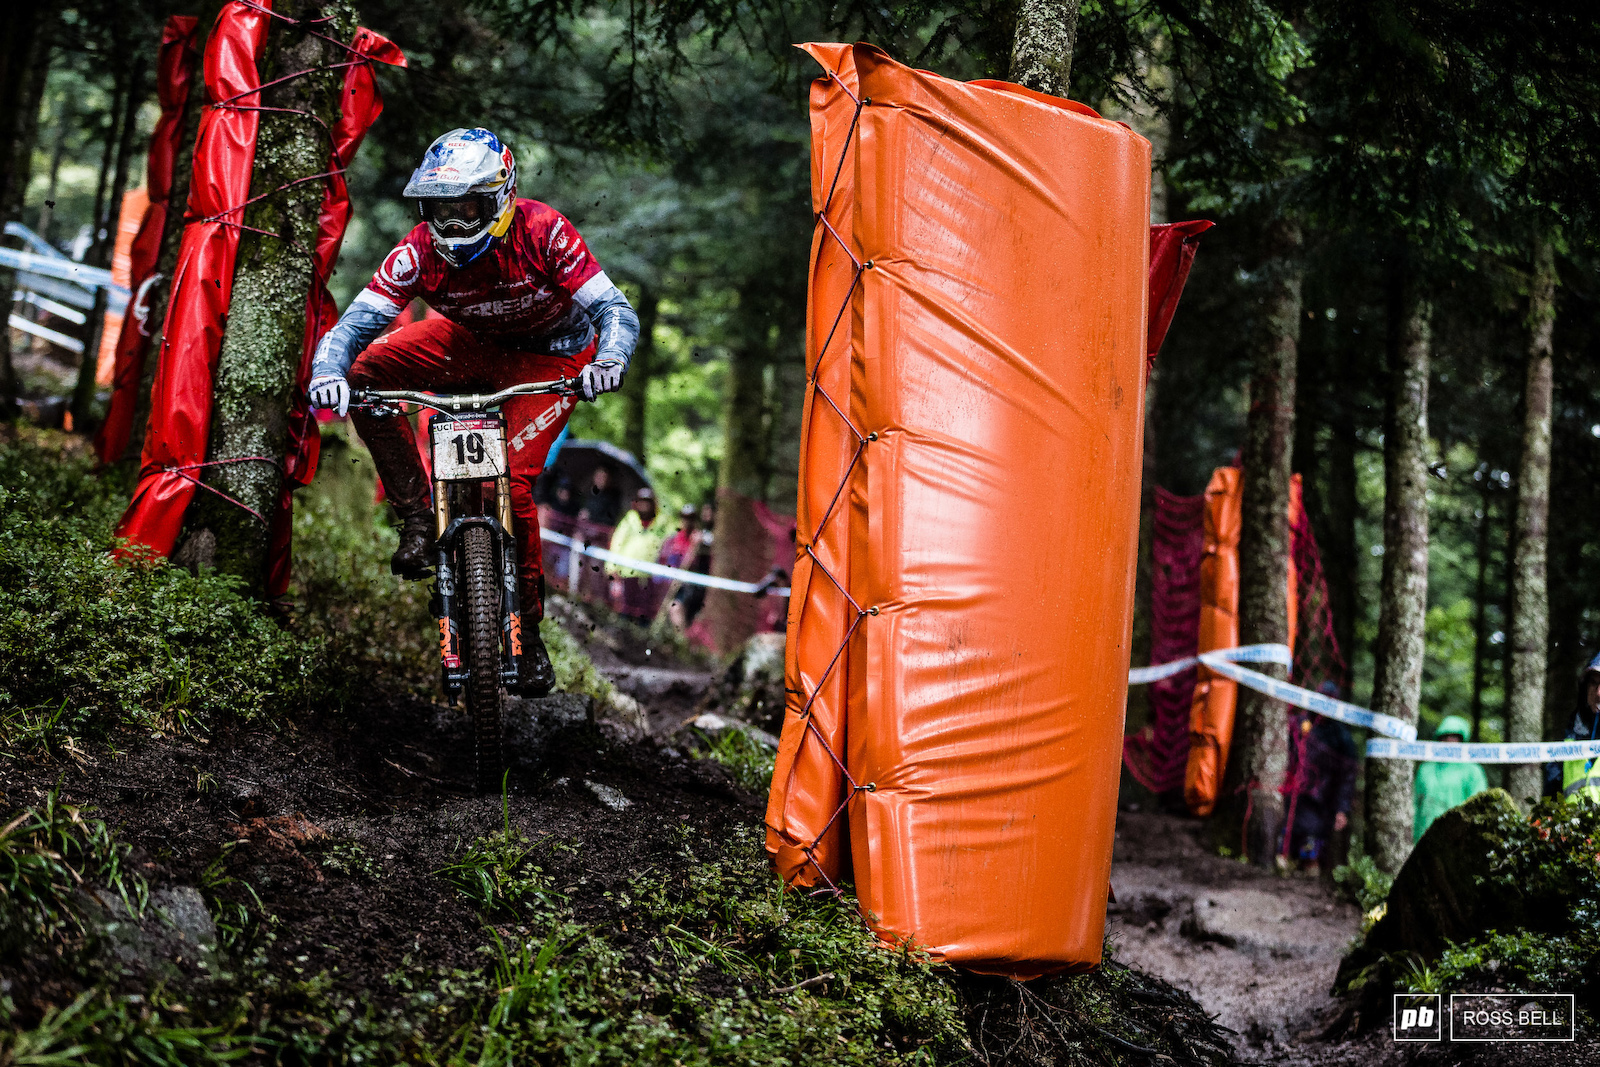 It s great to see a return to form for Gee Atherton after the last few seasons have been blighted by injury.